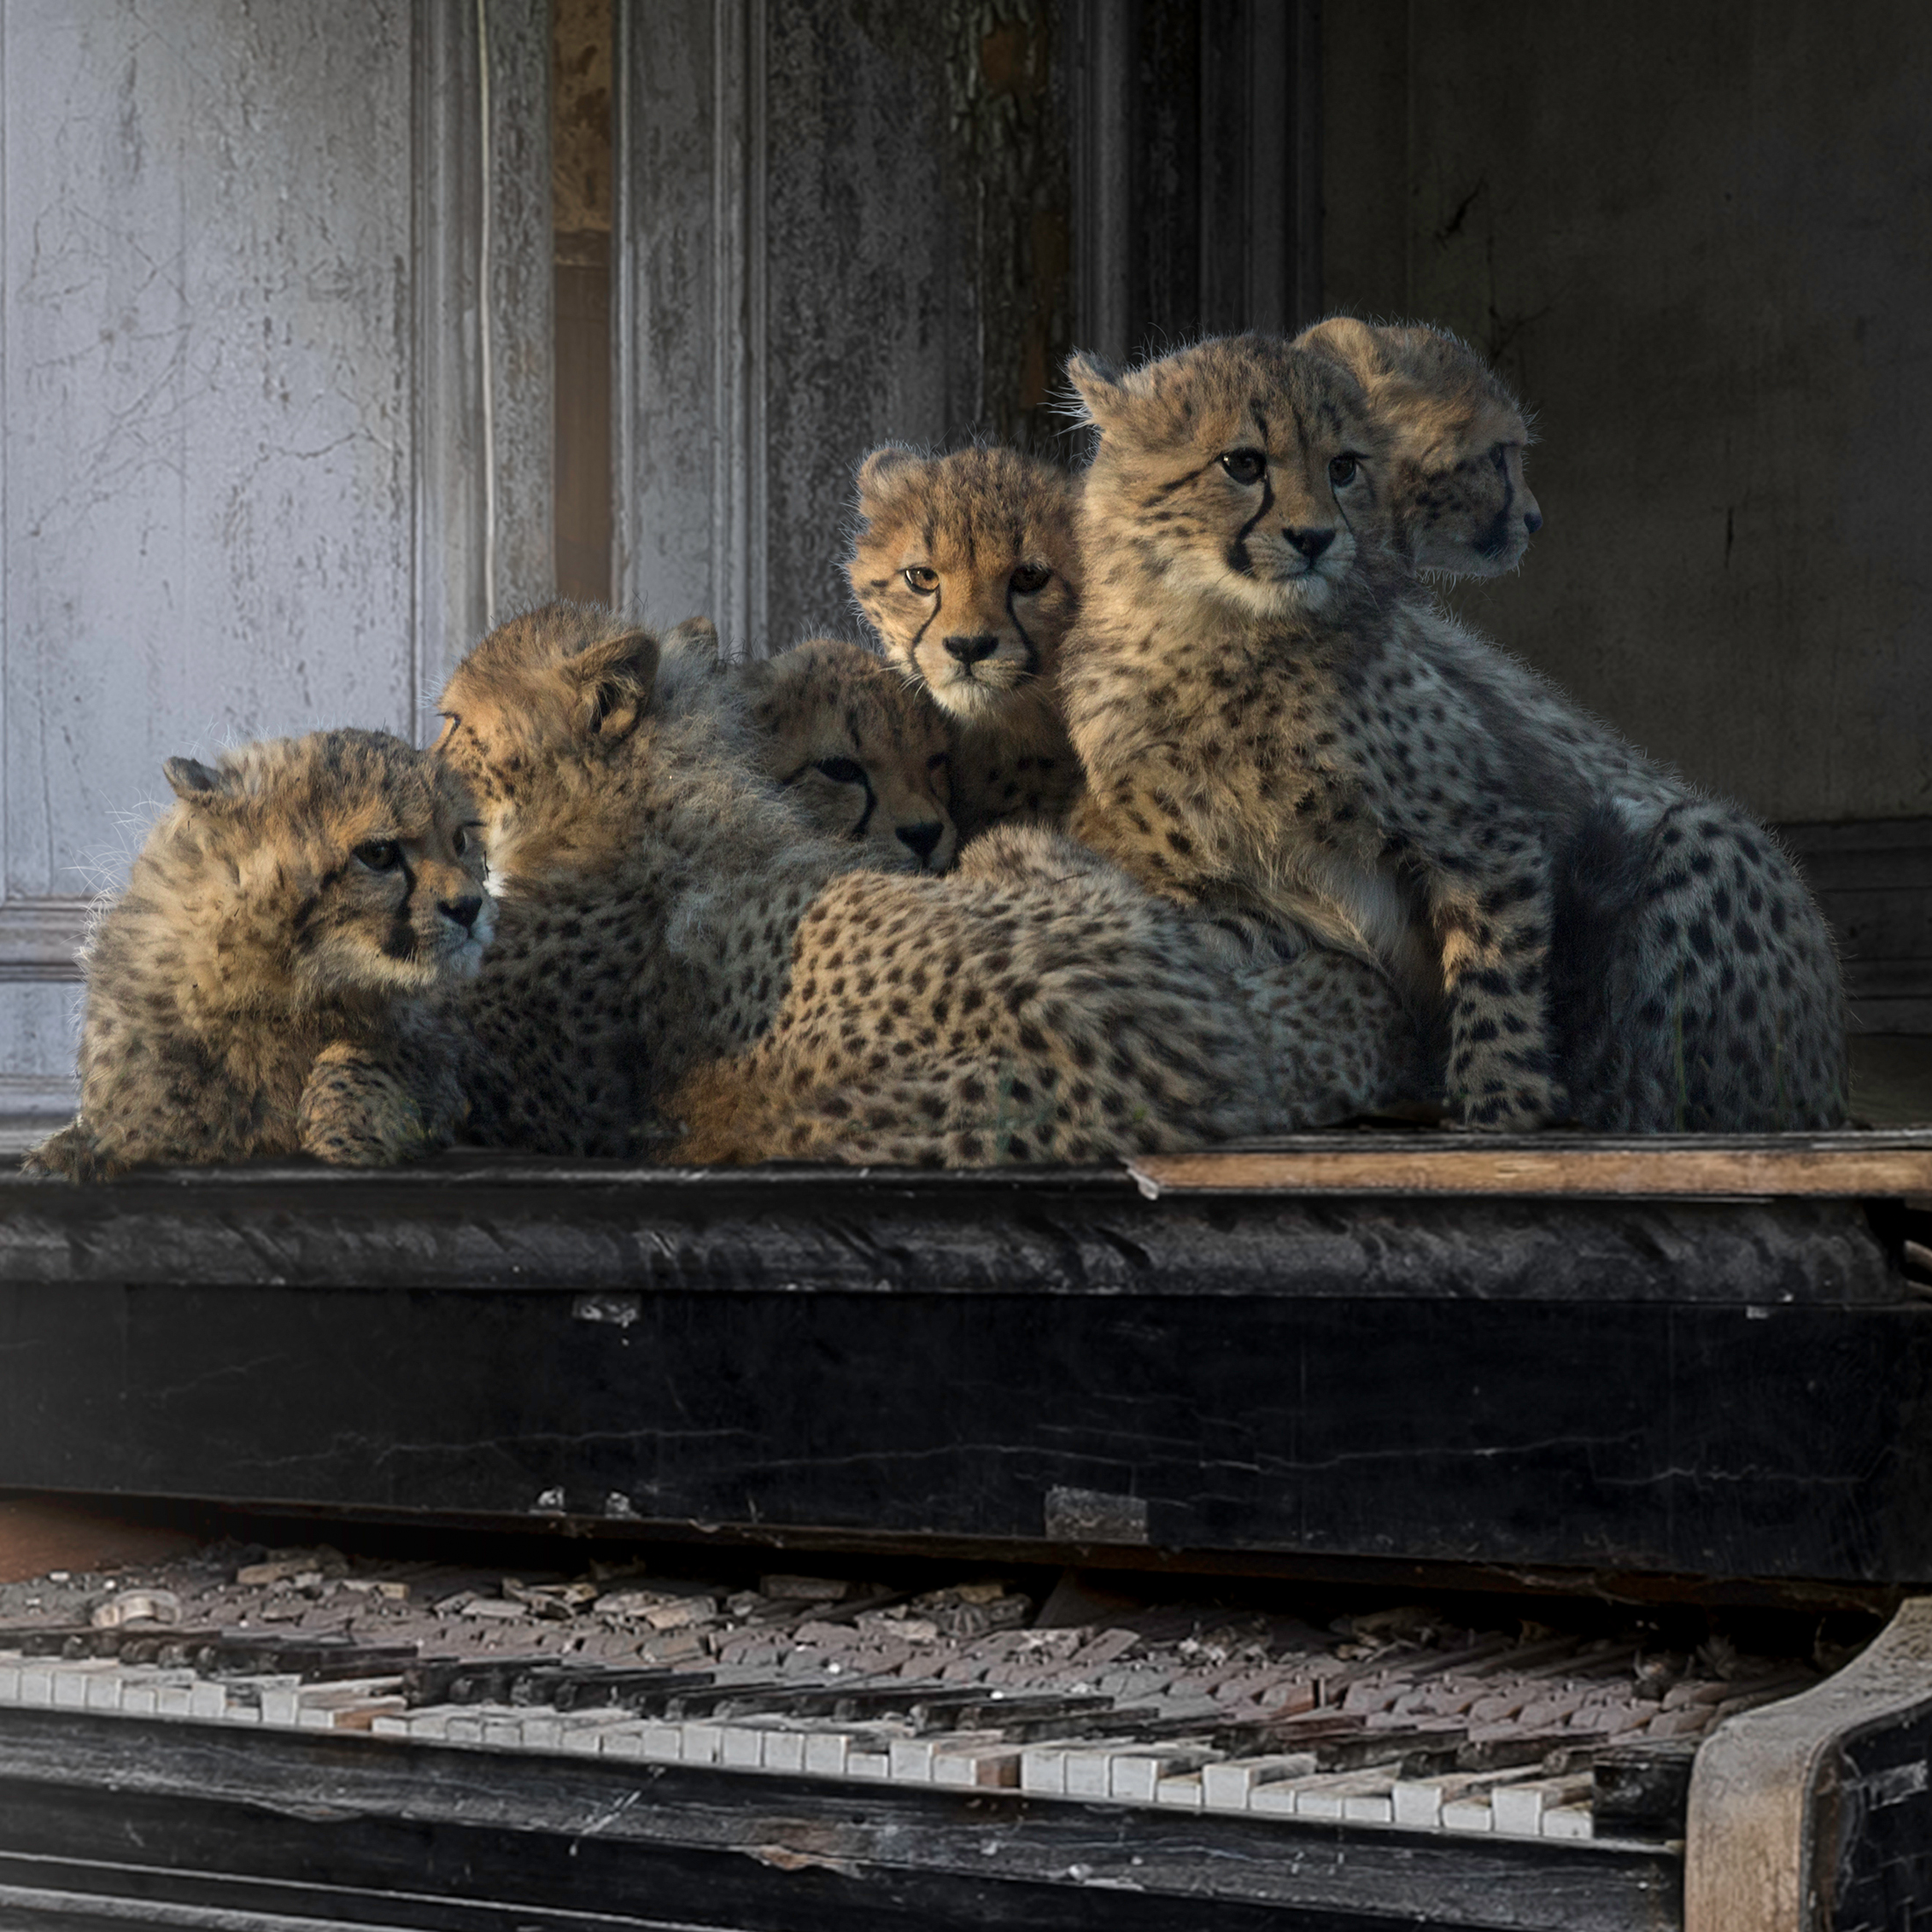 orchestra of life detail of cheetah cubs sitting on a piano